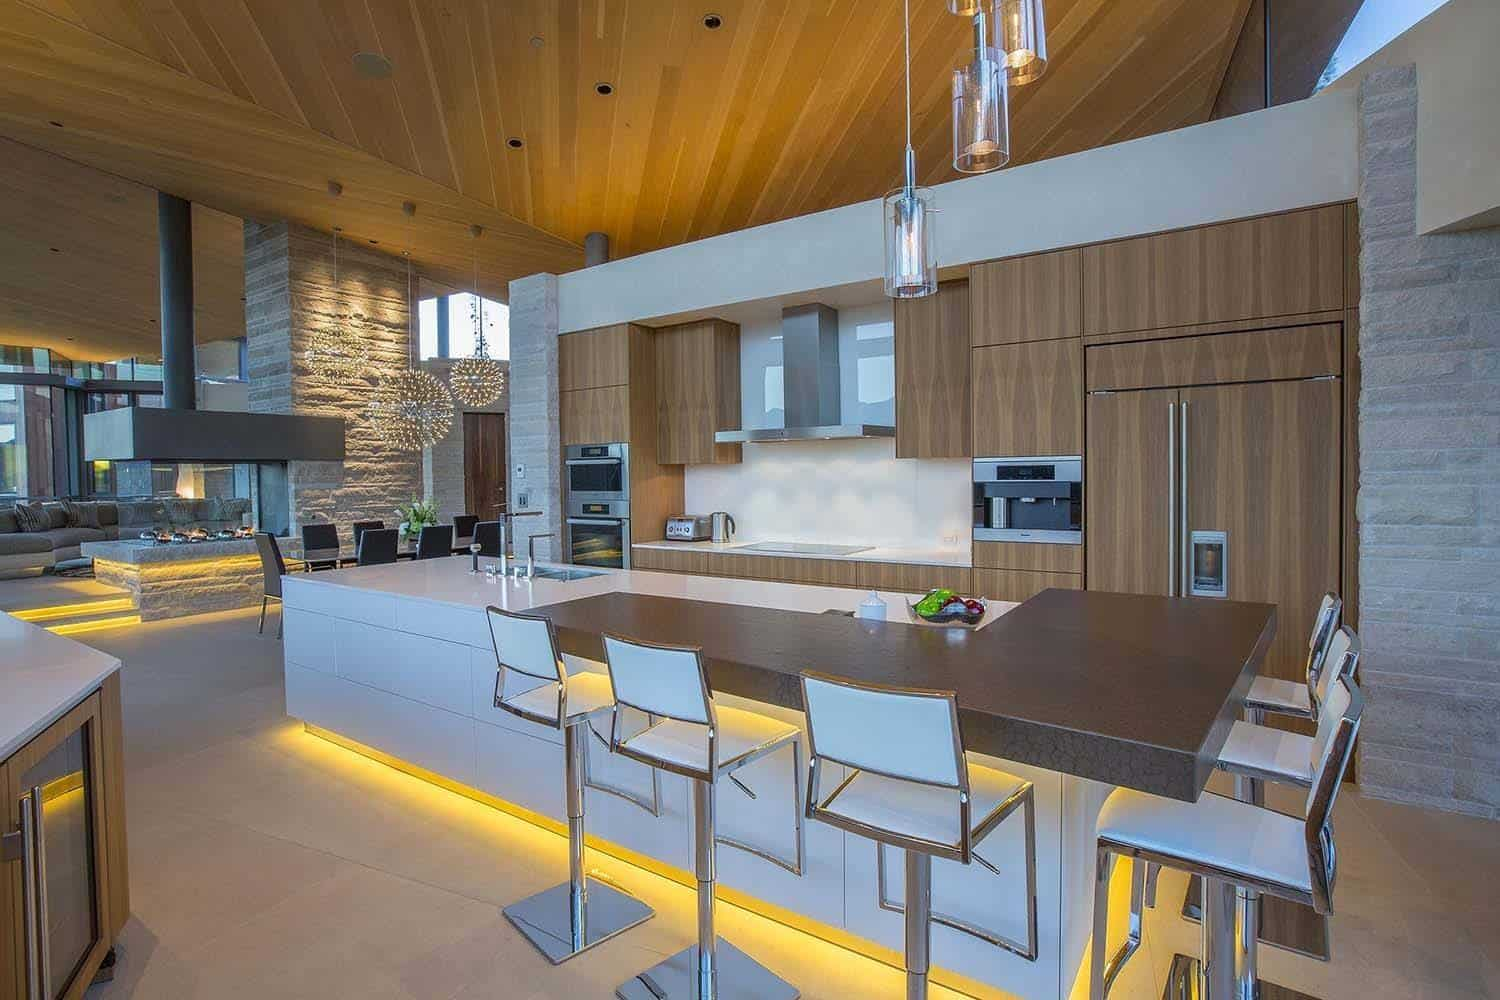 Modern-Residence-Colorado-Poss Architecture-20-1 Kindesign